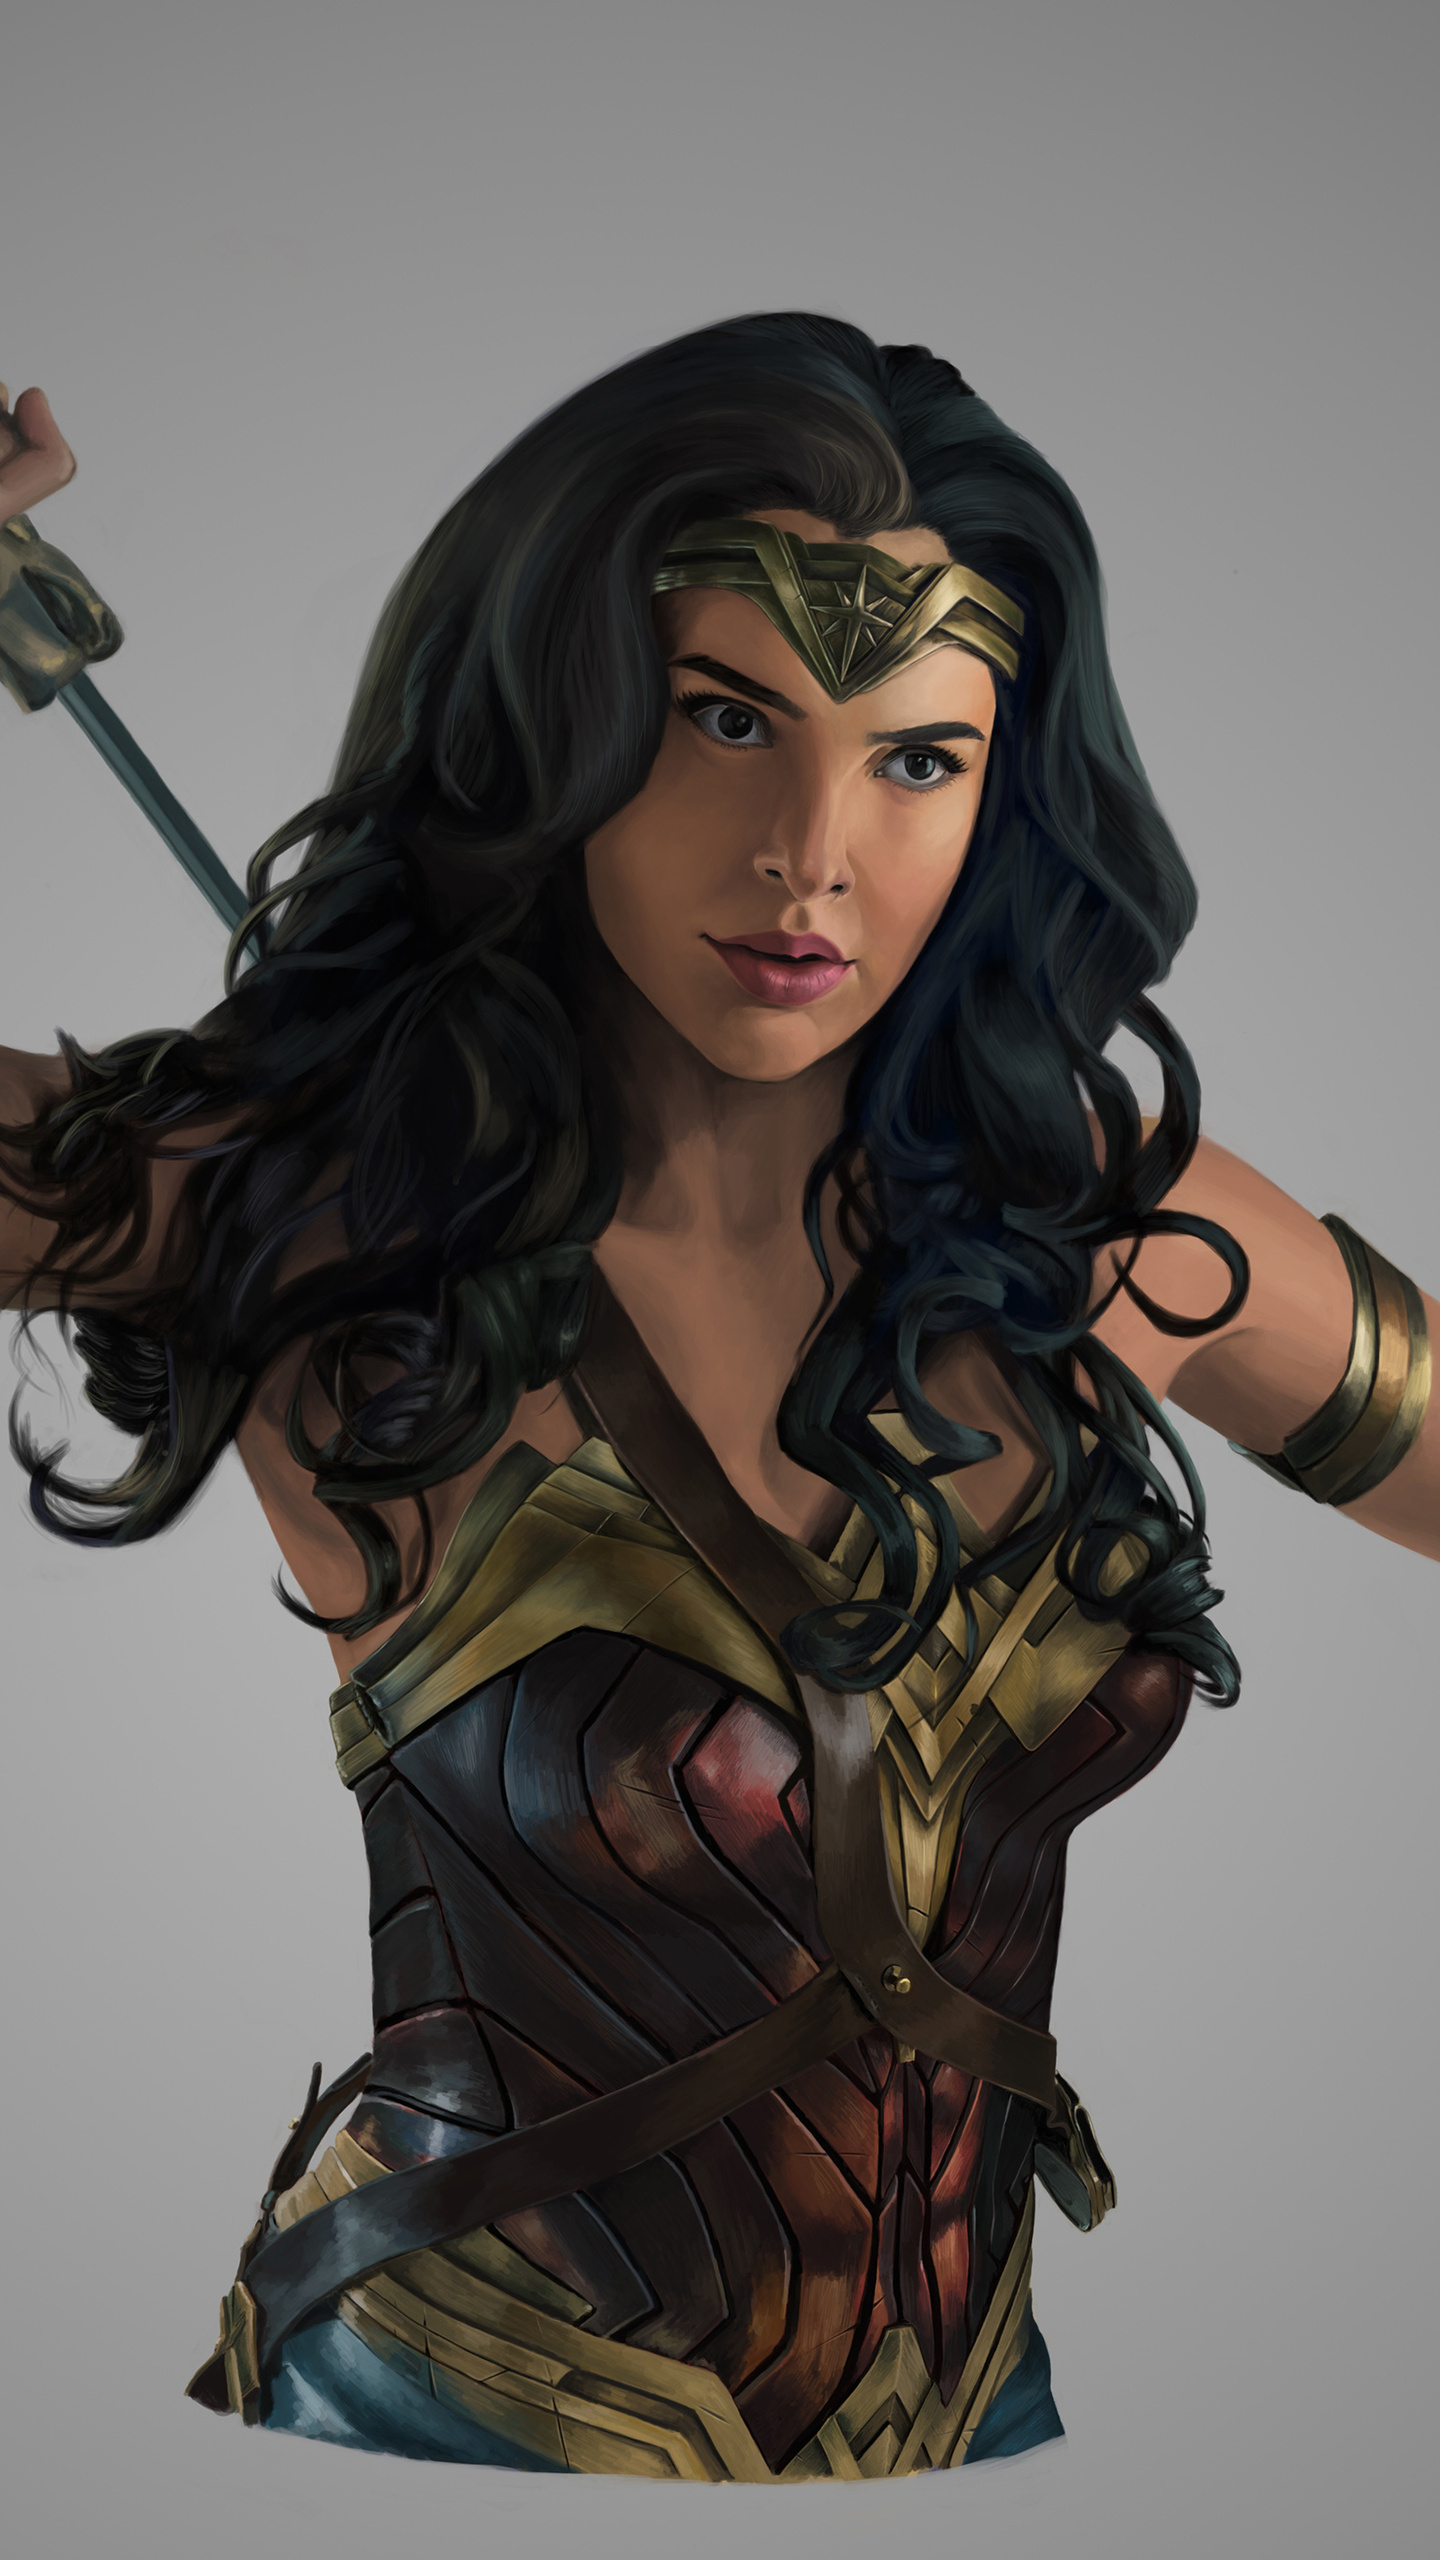 4k-wonder-woman-paint-art-hs.jpg